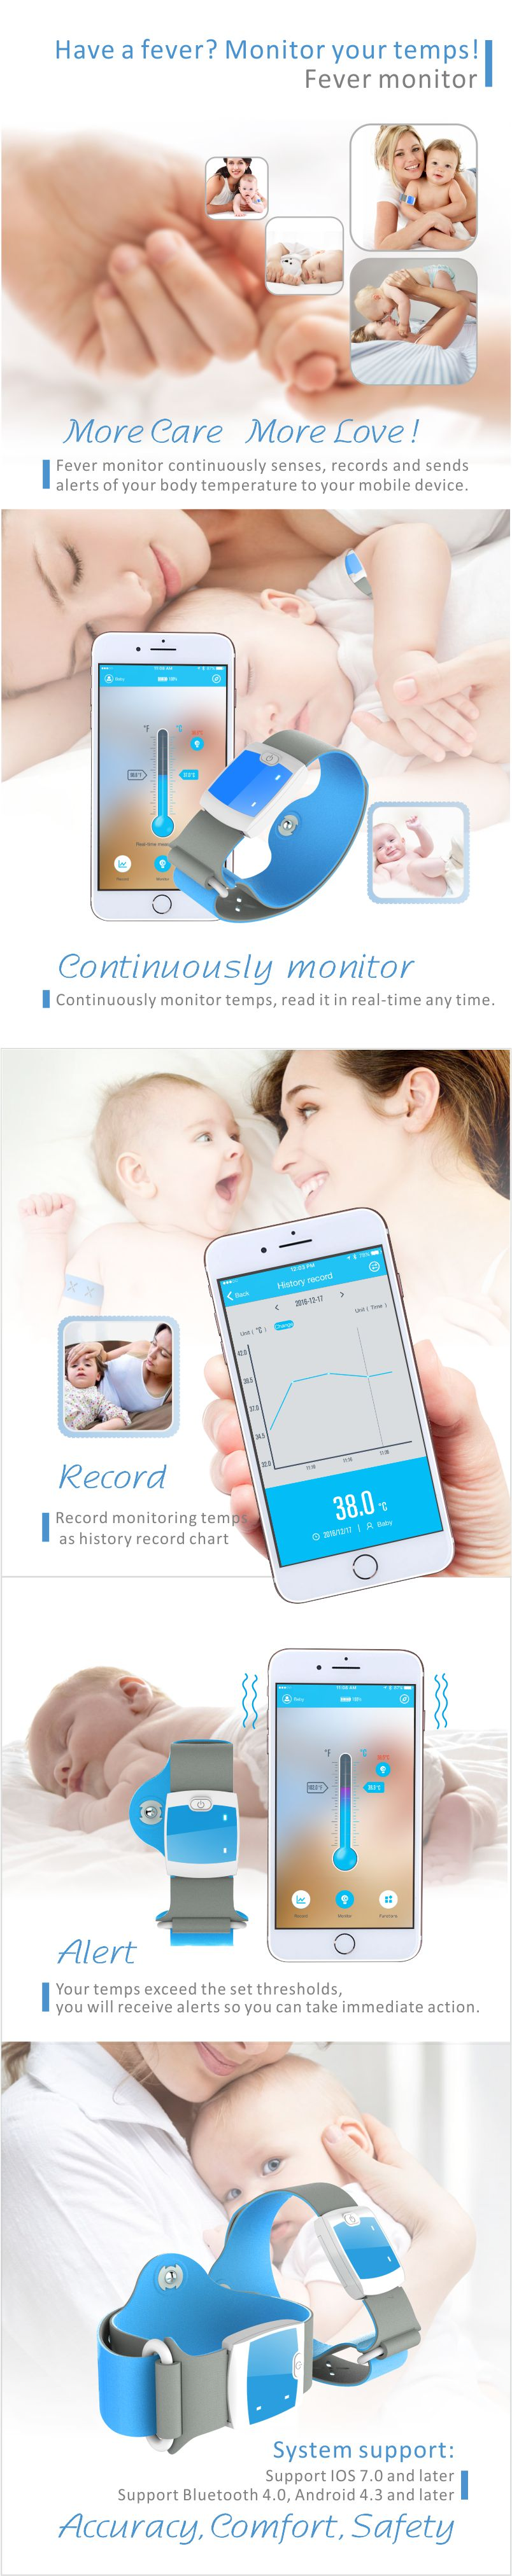 Vvcare BC-DQ02 Smart Medical Thermometer Bluetooth 4.0 Wireless 24HR Continuous Fever Monitoring with Mobile Alerts for Baby